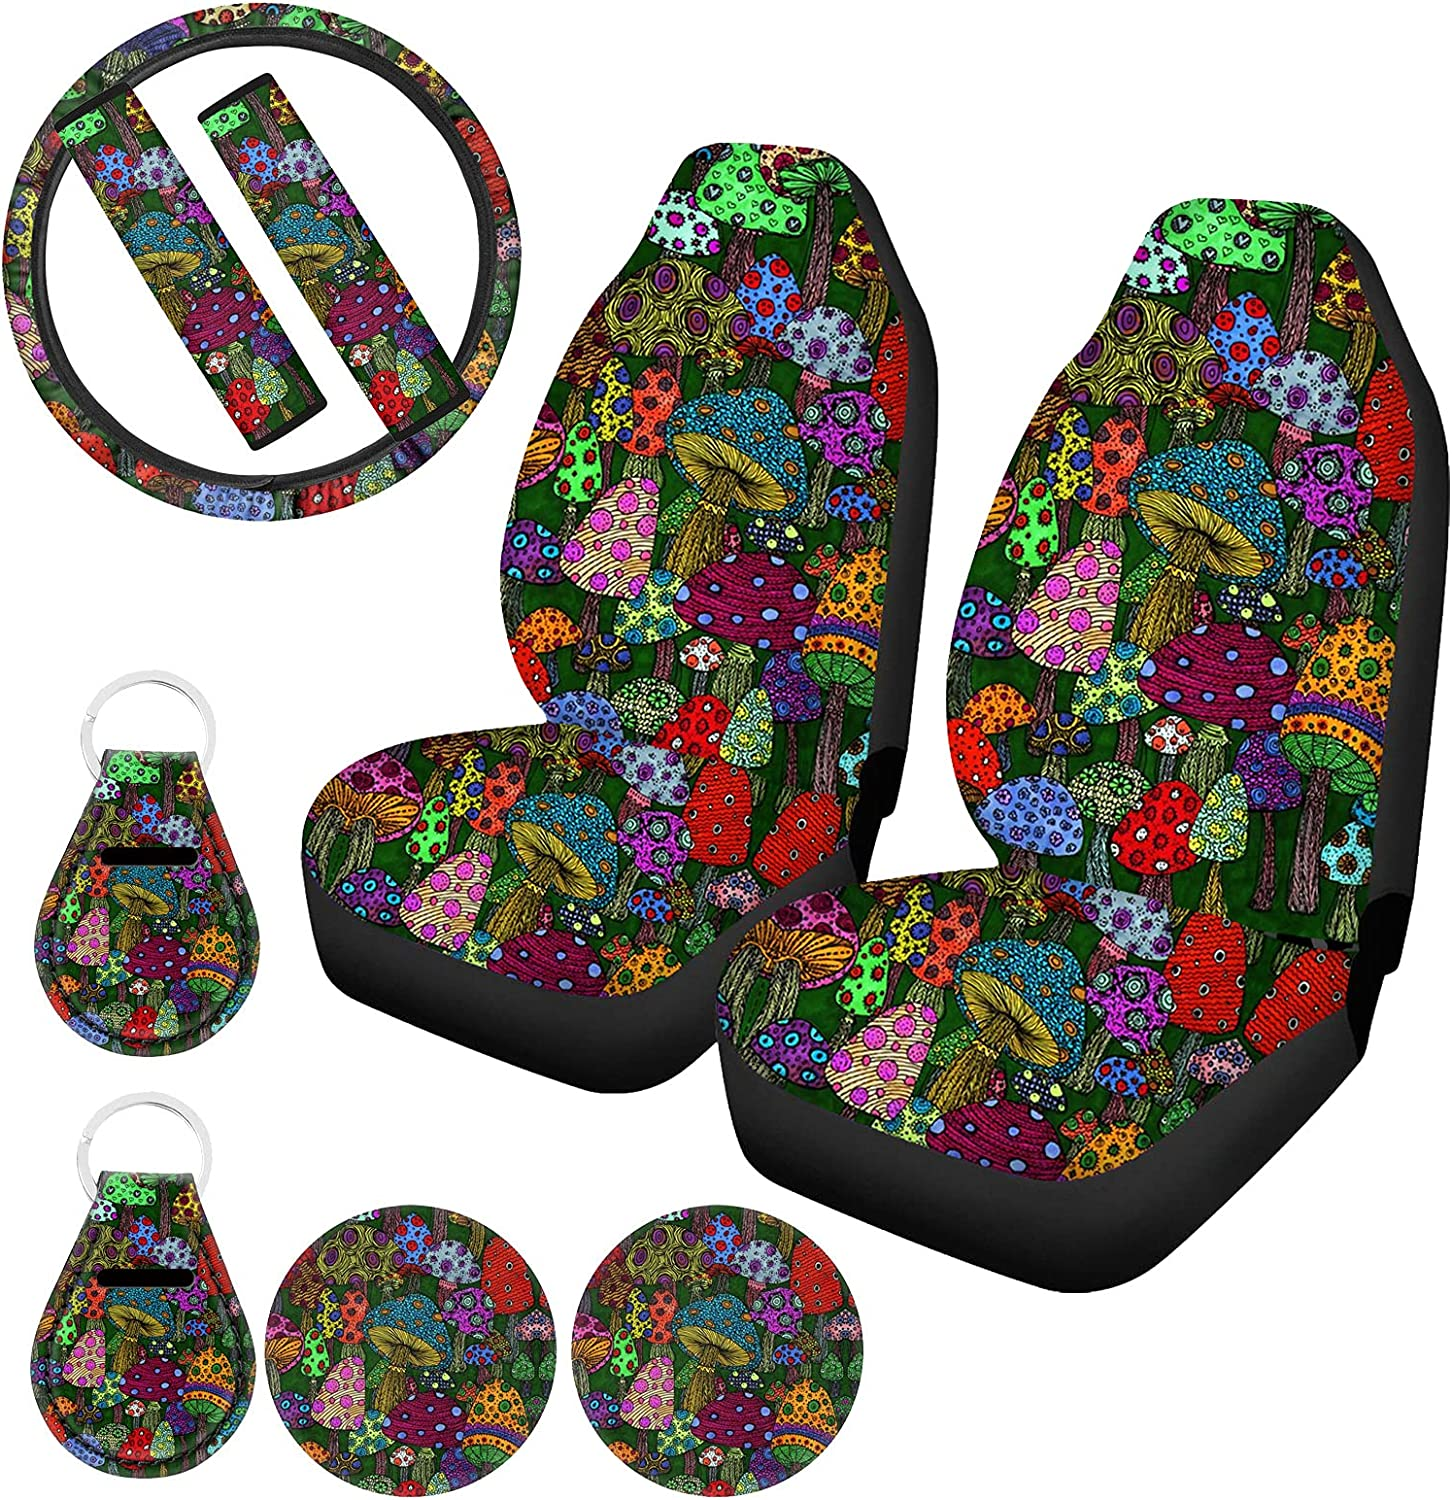 Xhuibop Cartoon Mushroom Cheap mail OFFicial store order sales Car Seat Covers Steerin Full Pack 9 Set